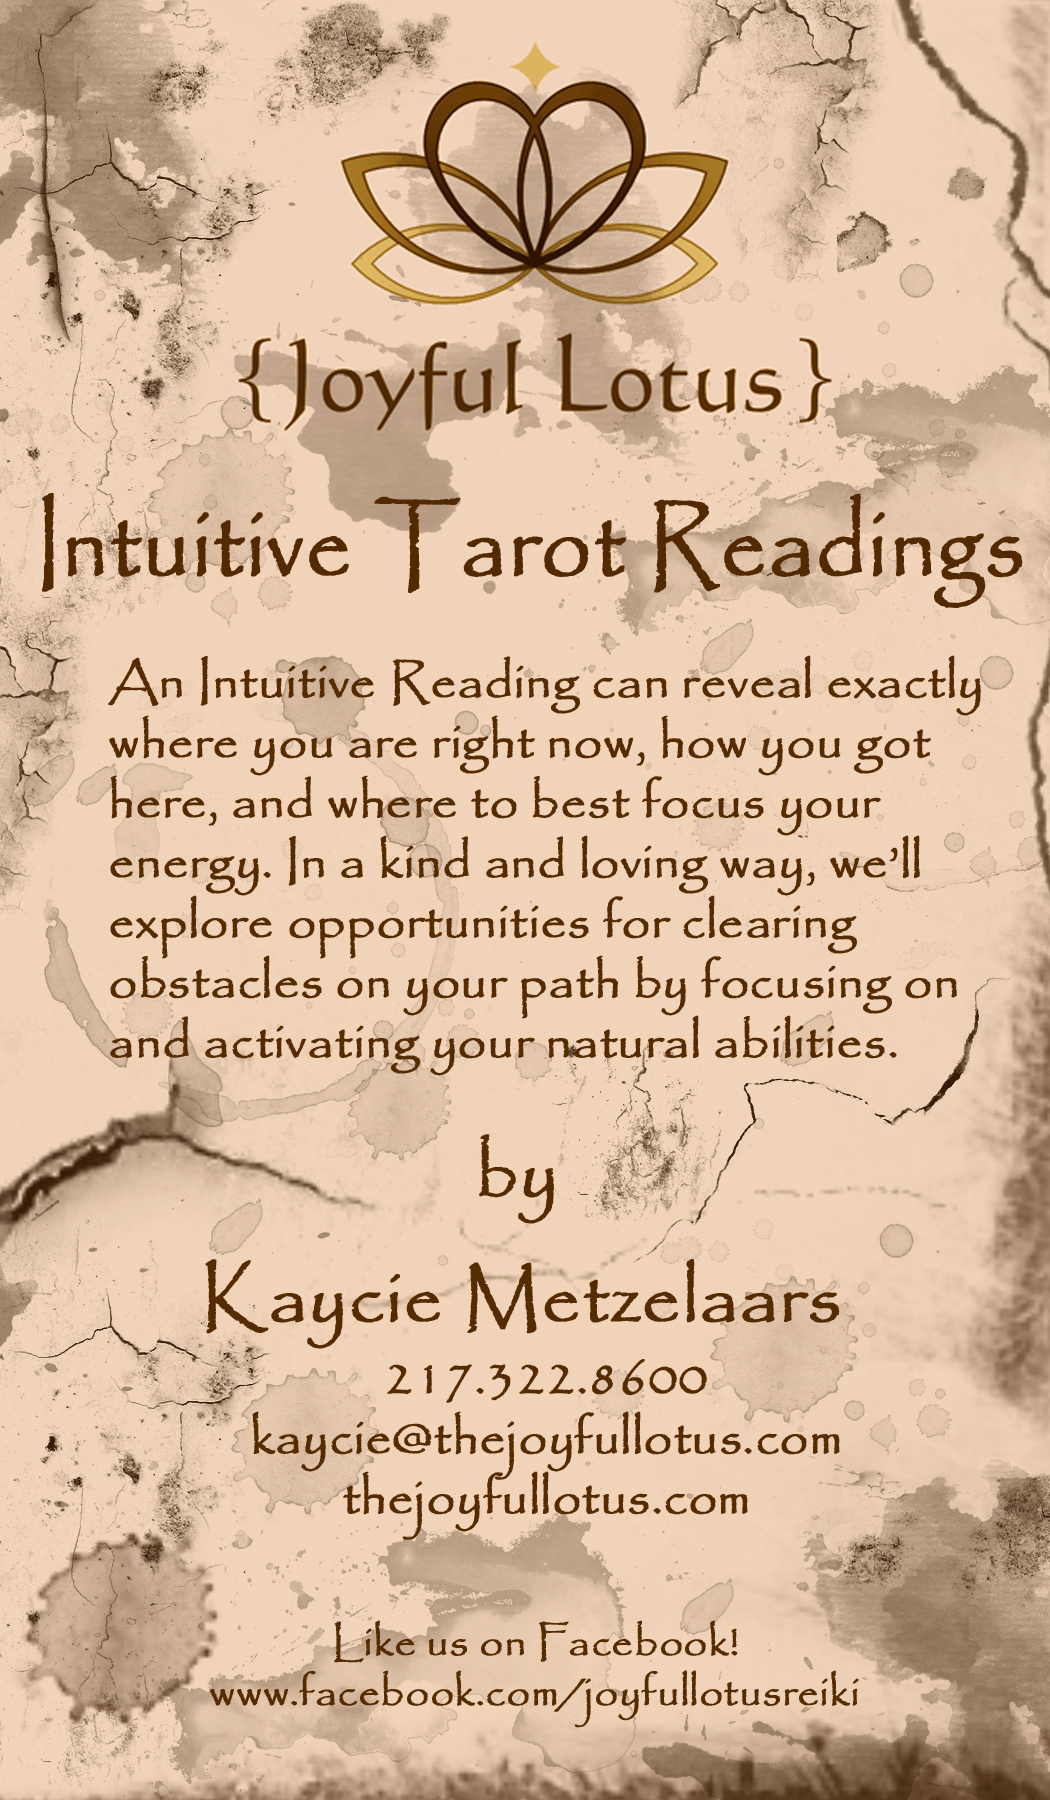 FREE Intuitive Tarot Reading By Joyful Lotus